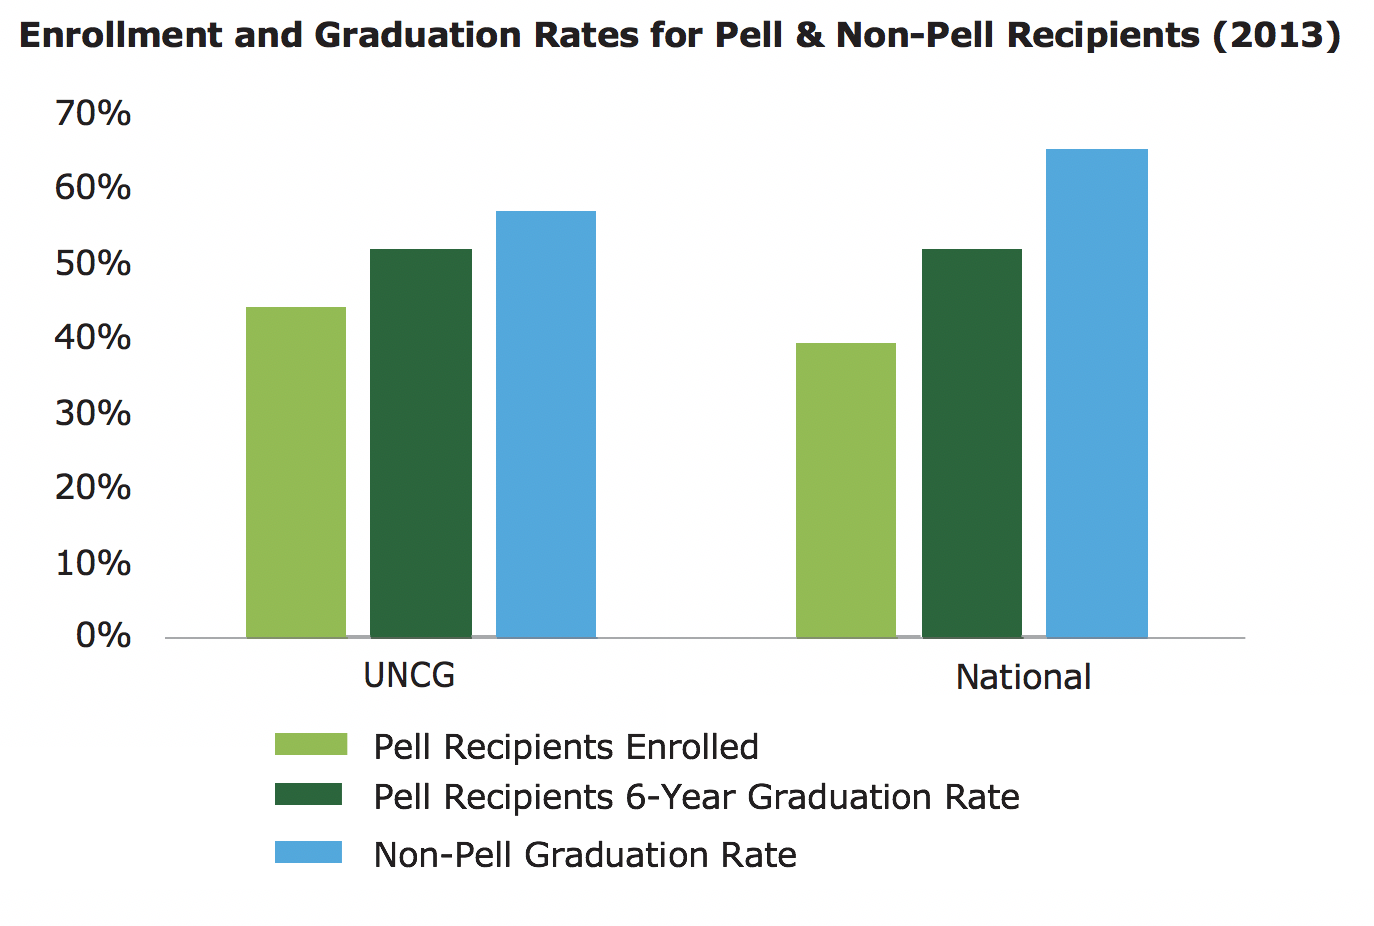 enrollment and grad rates for pell and non-pell recipients 2013